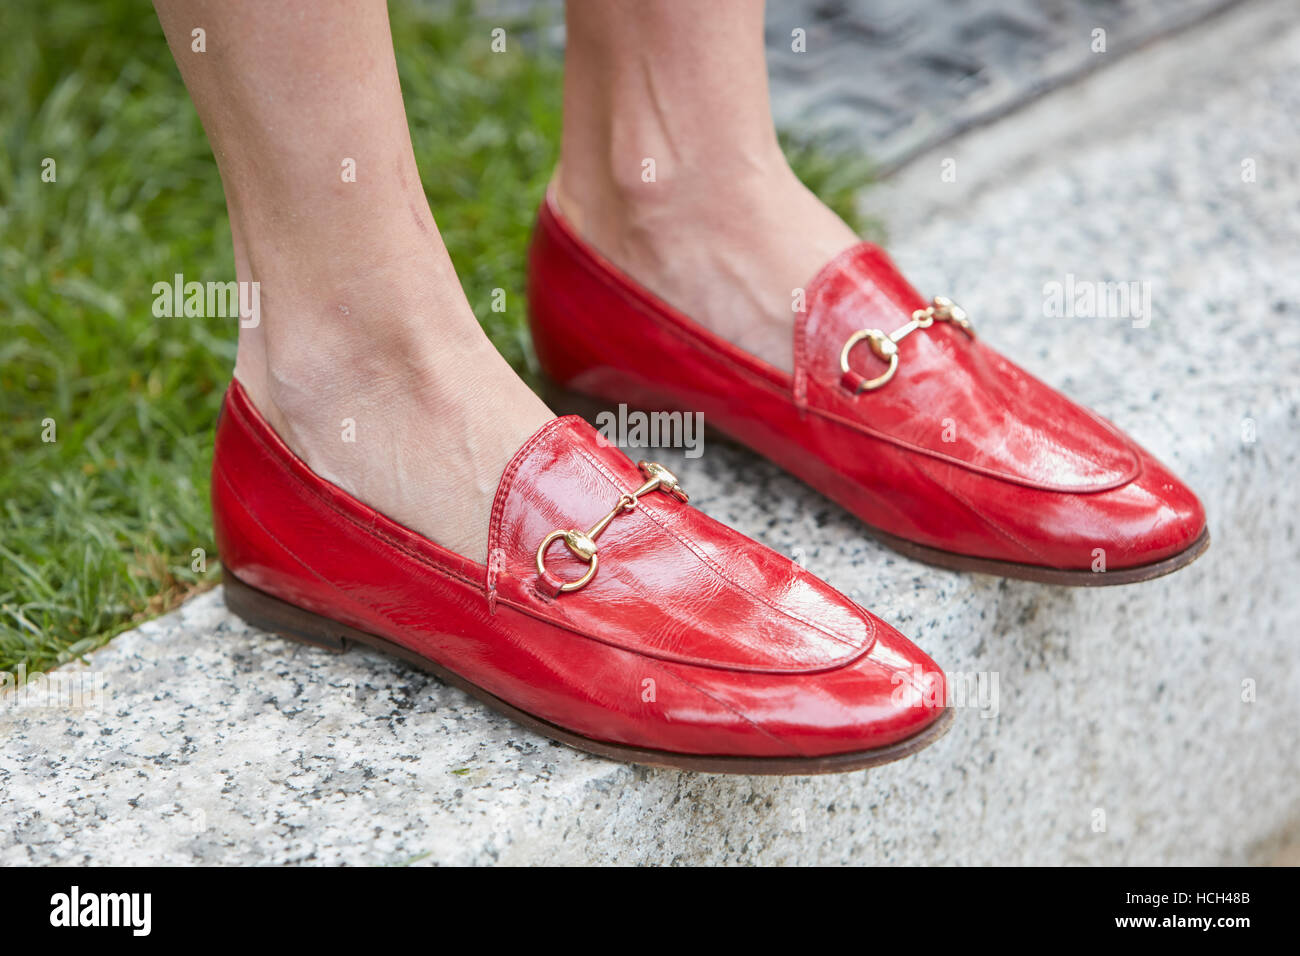 2fefd3e8c248 Gucci Shoes Stock Photos   Gucci Shoes Stock Images - Alamy